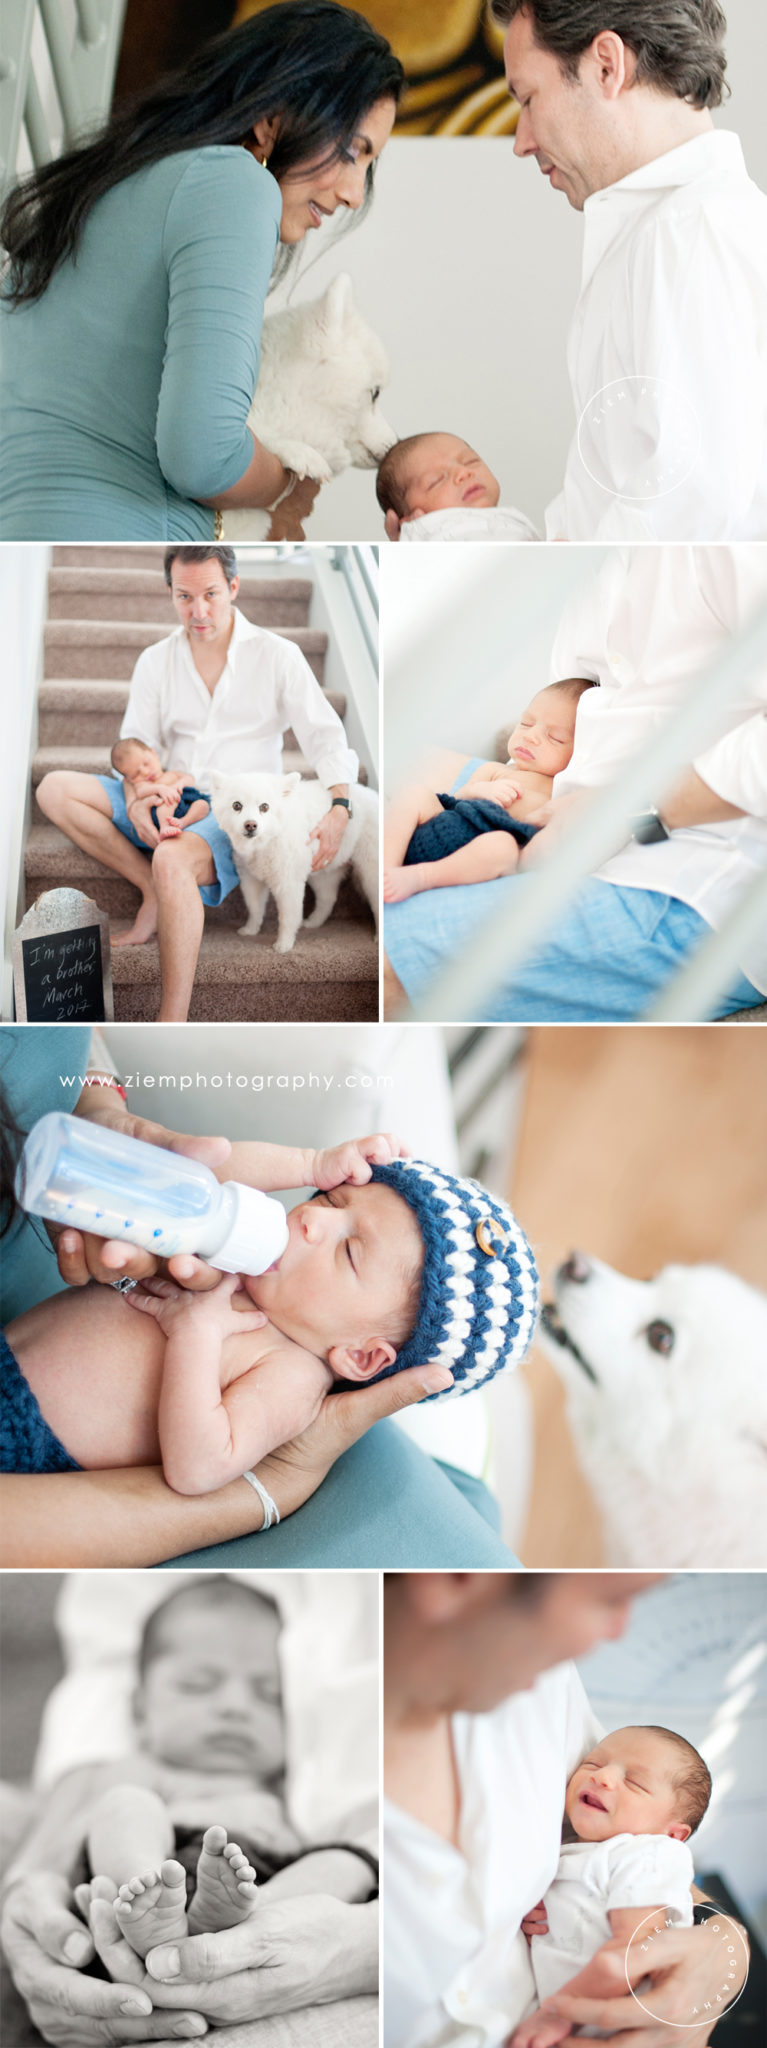 austin newborn photography shaw ziem photography